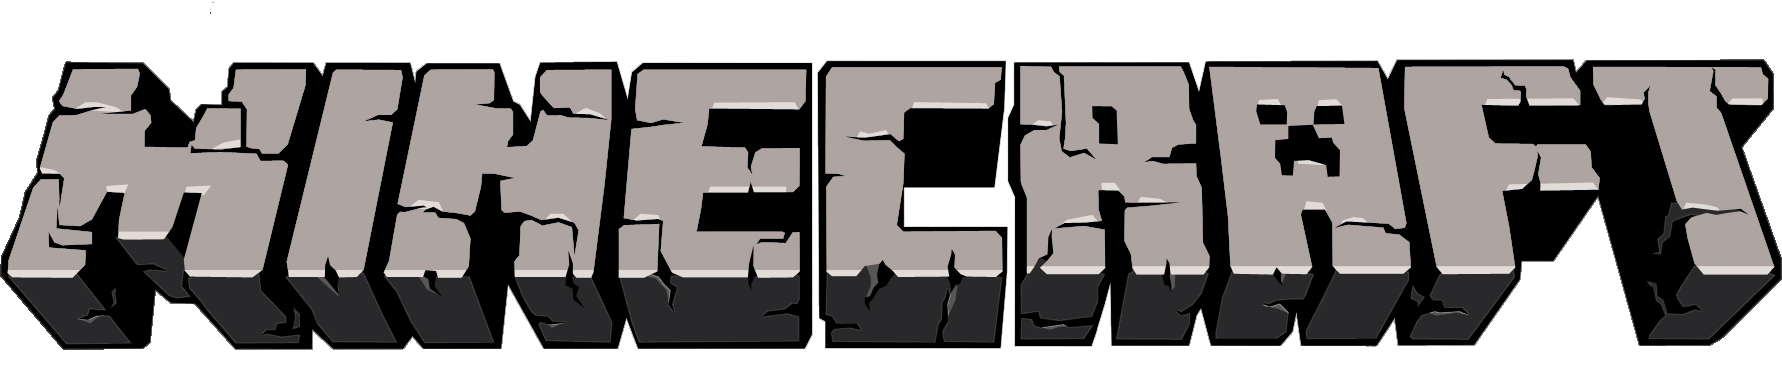 Logo Minecraft Transparent Png Stickpng